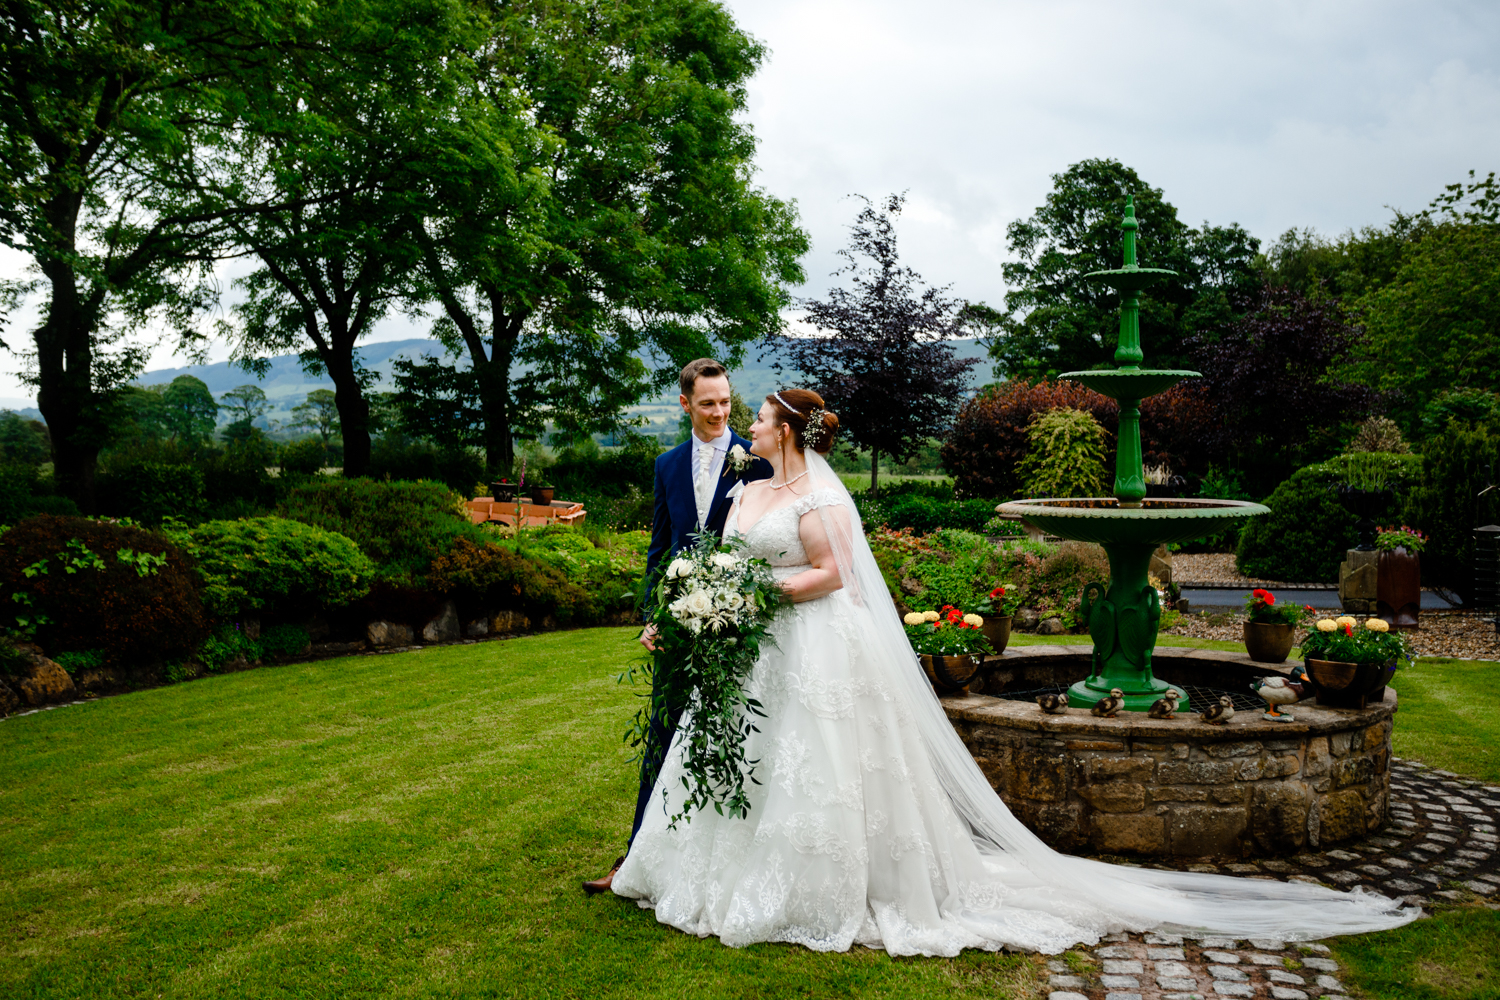 Lancashire-wedding-photographer-adele-and-alex-122.jpg